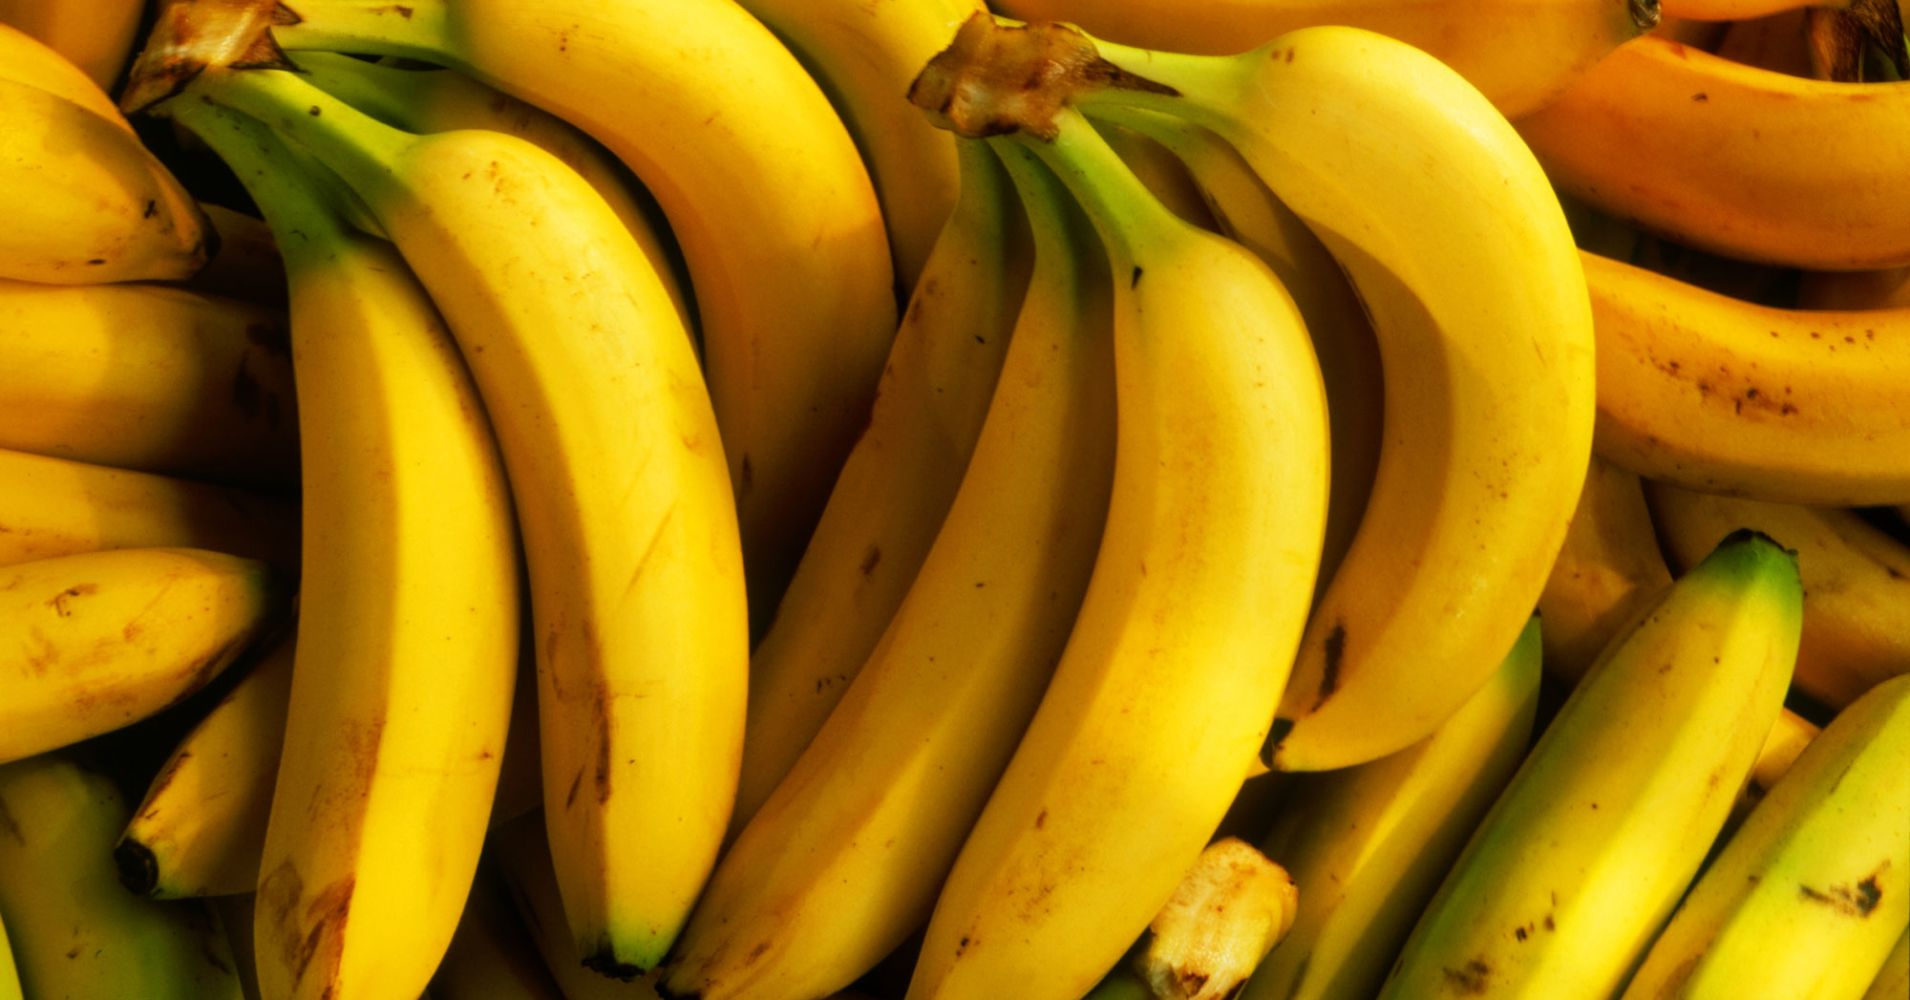 The banana industry is under threat because of Panama disease